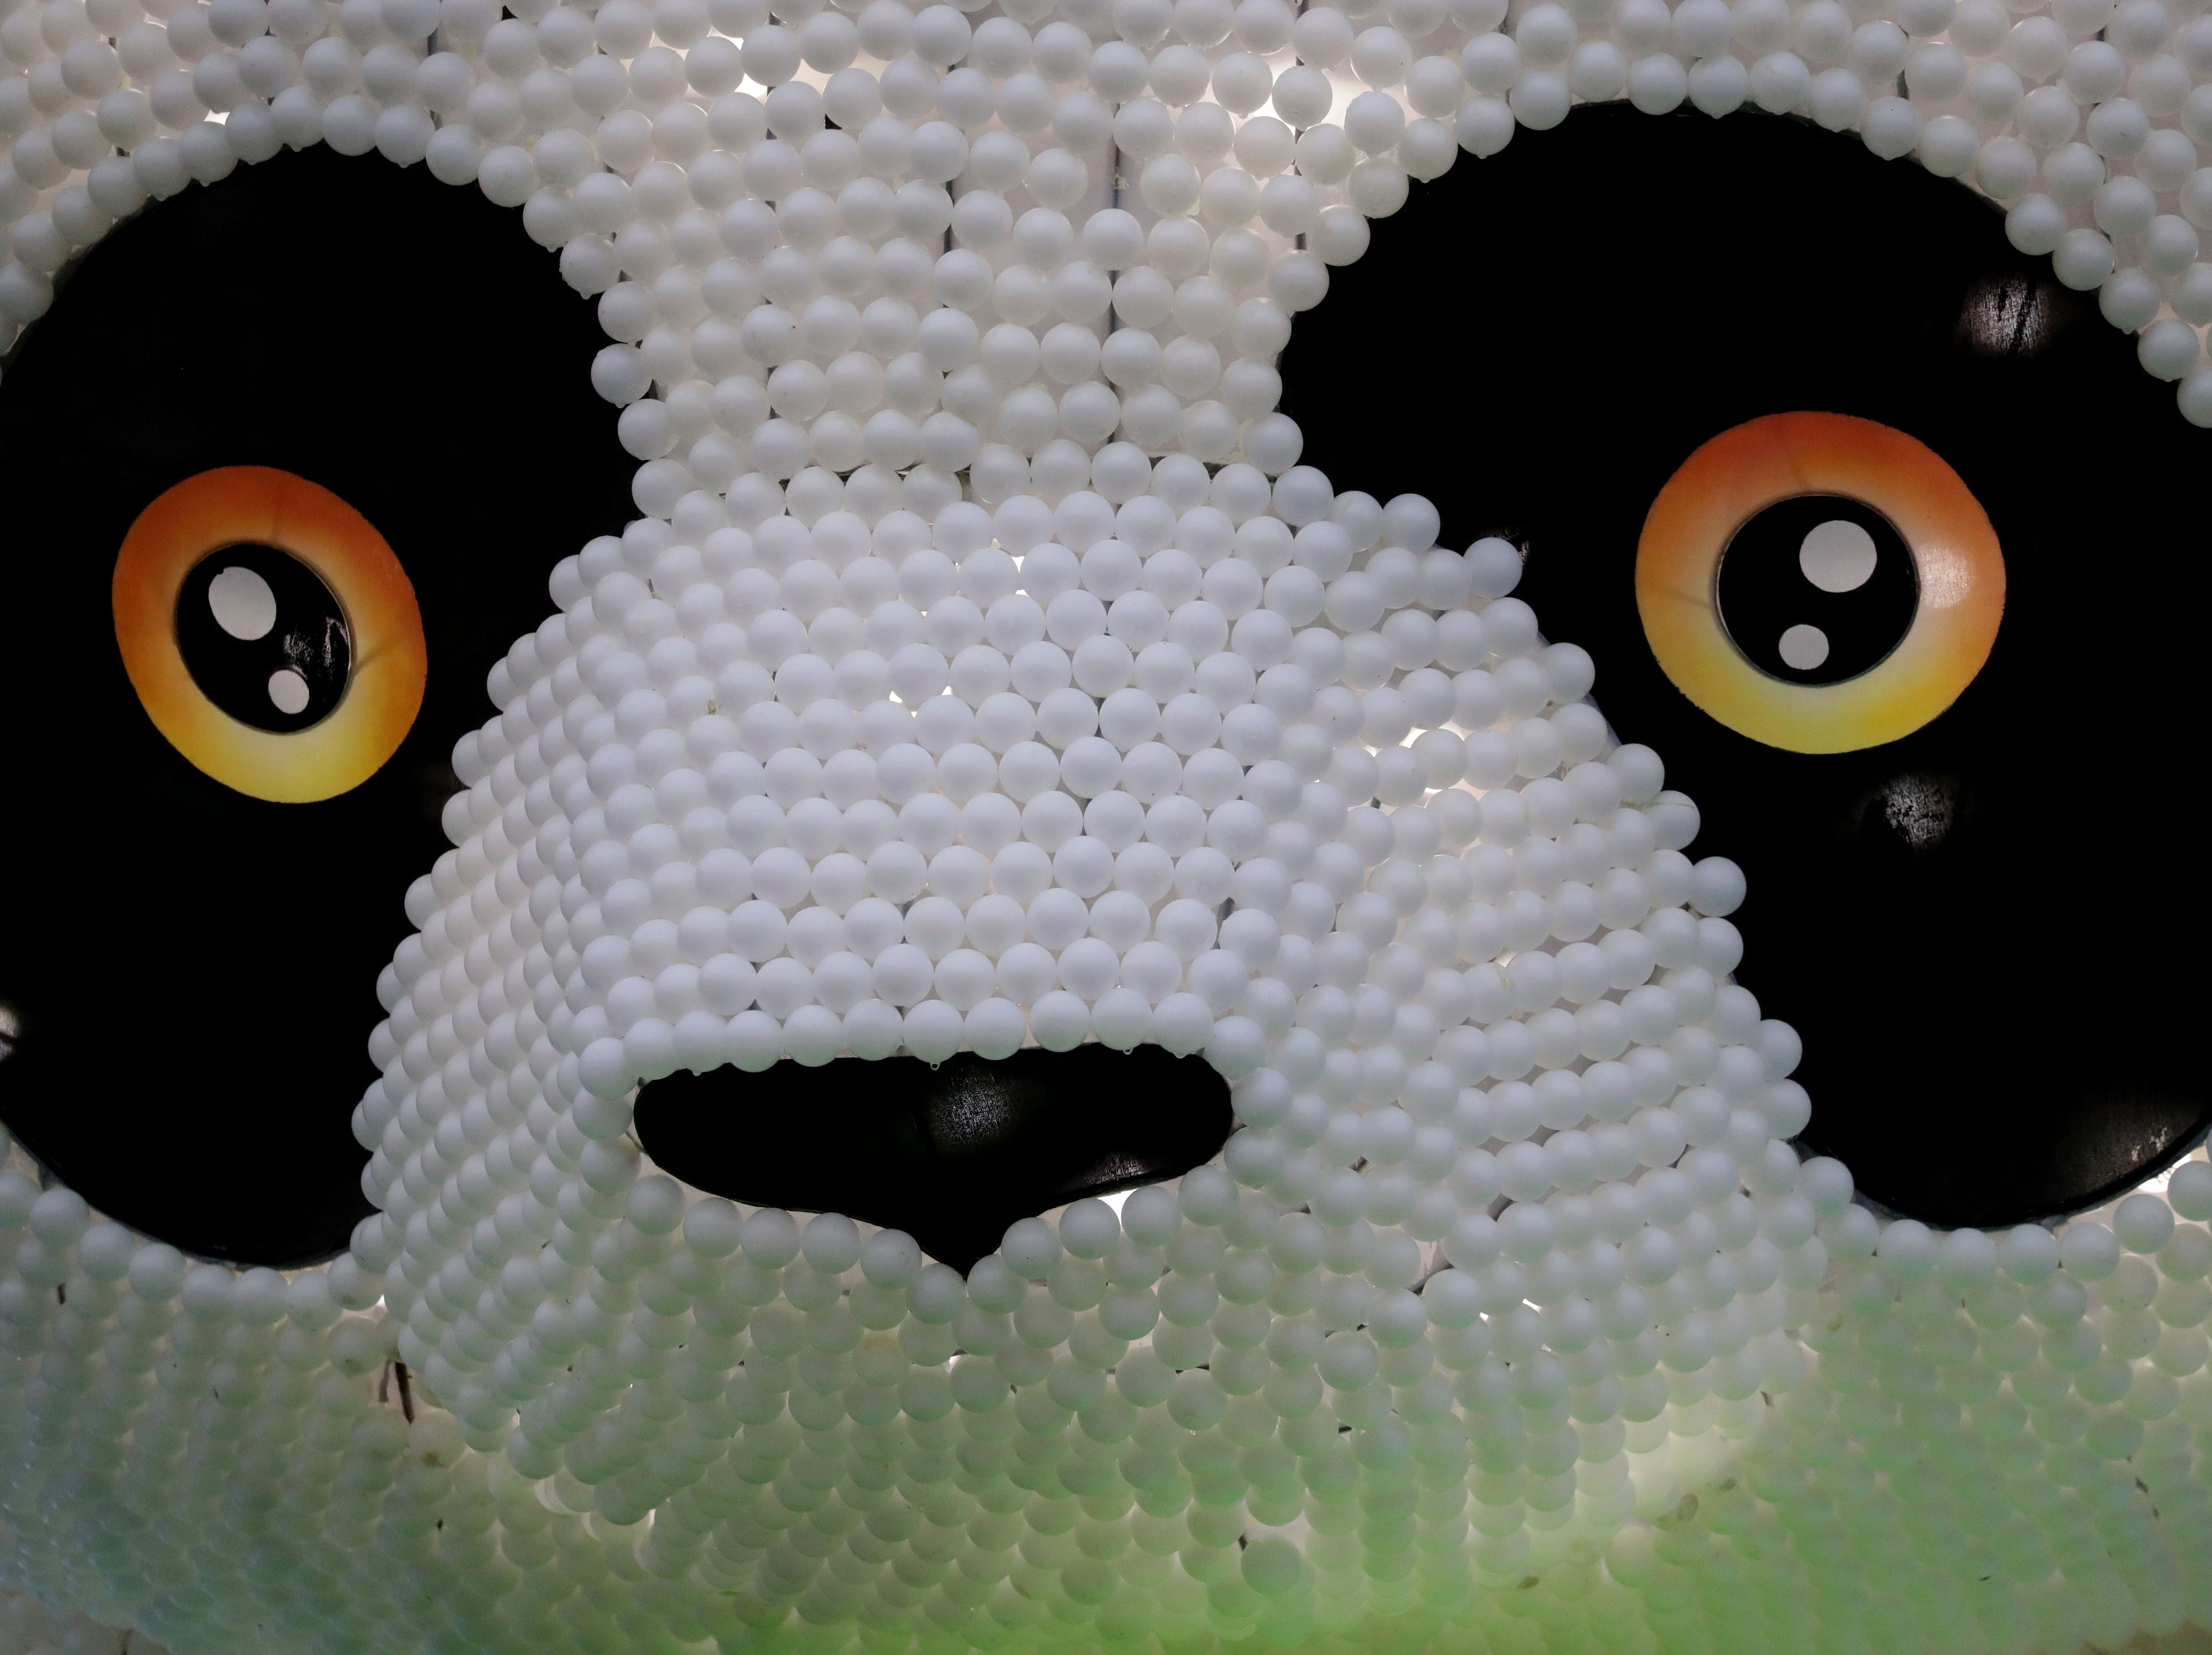 A giant Panda sculpture covered with thousands of pingpong balls is sitting outside the festival entrance.